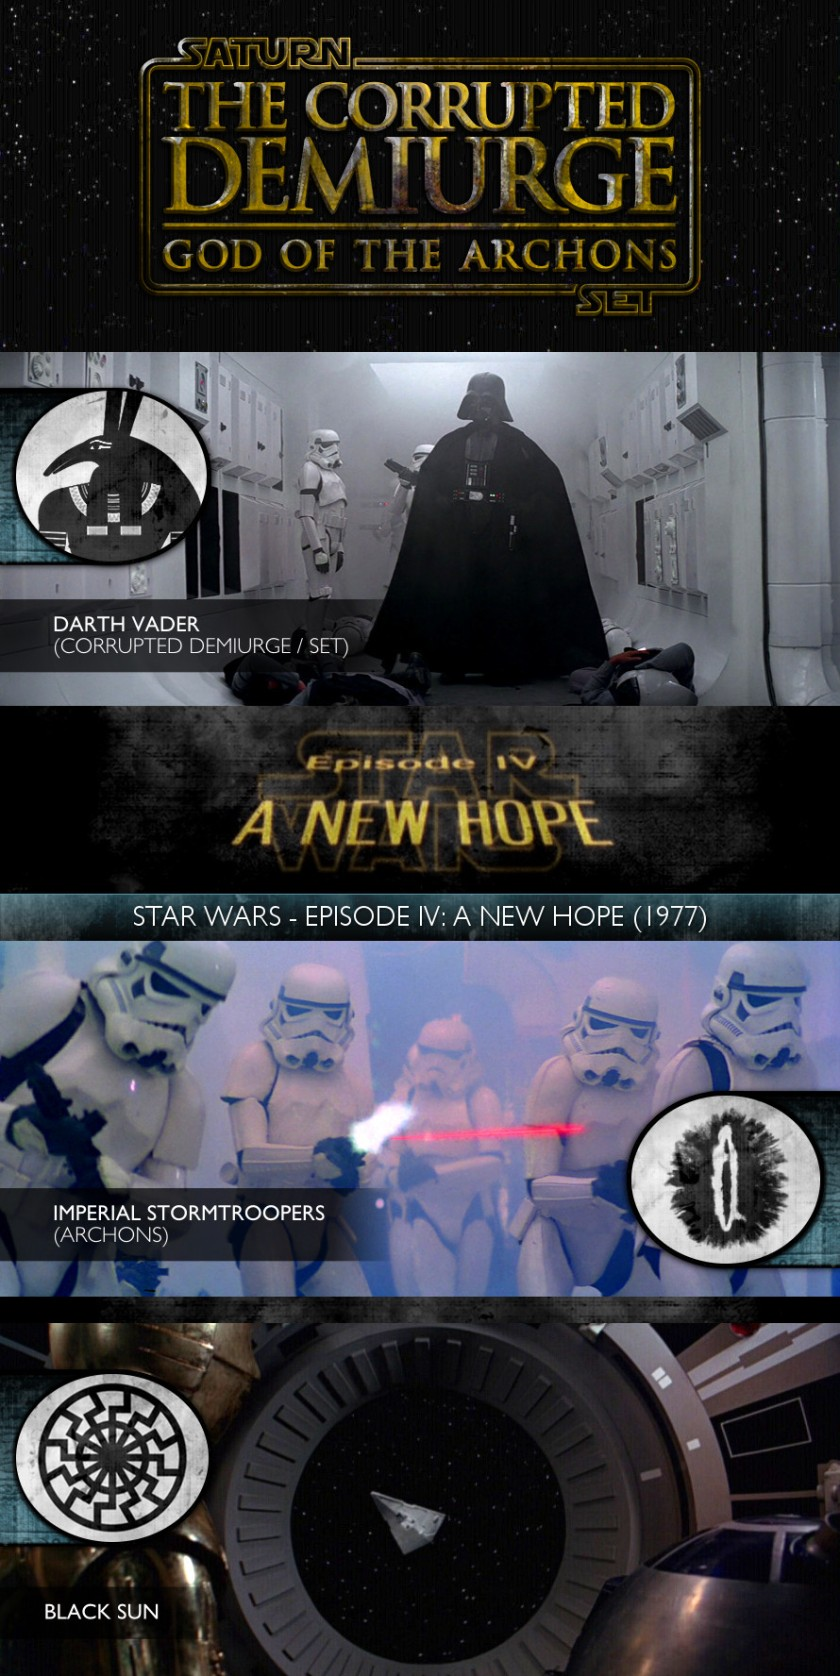 The Corrupted Demiurge - Star Wars - Episode IV - A New Hope (1977) - Darth Vader